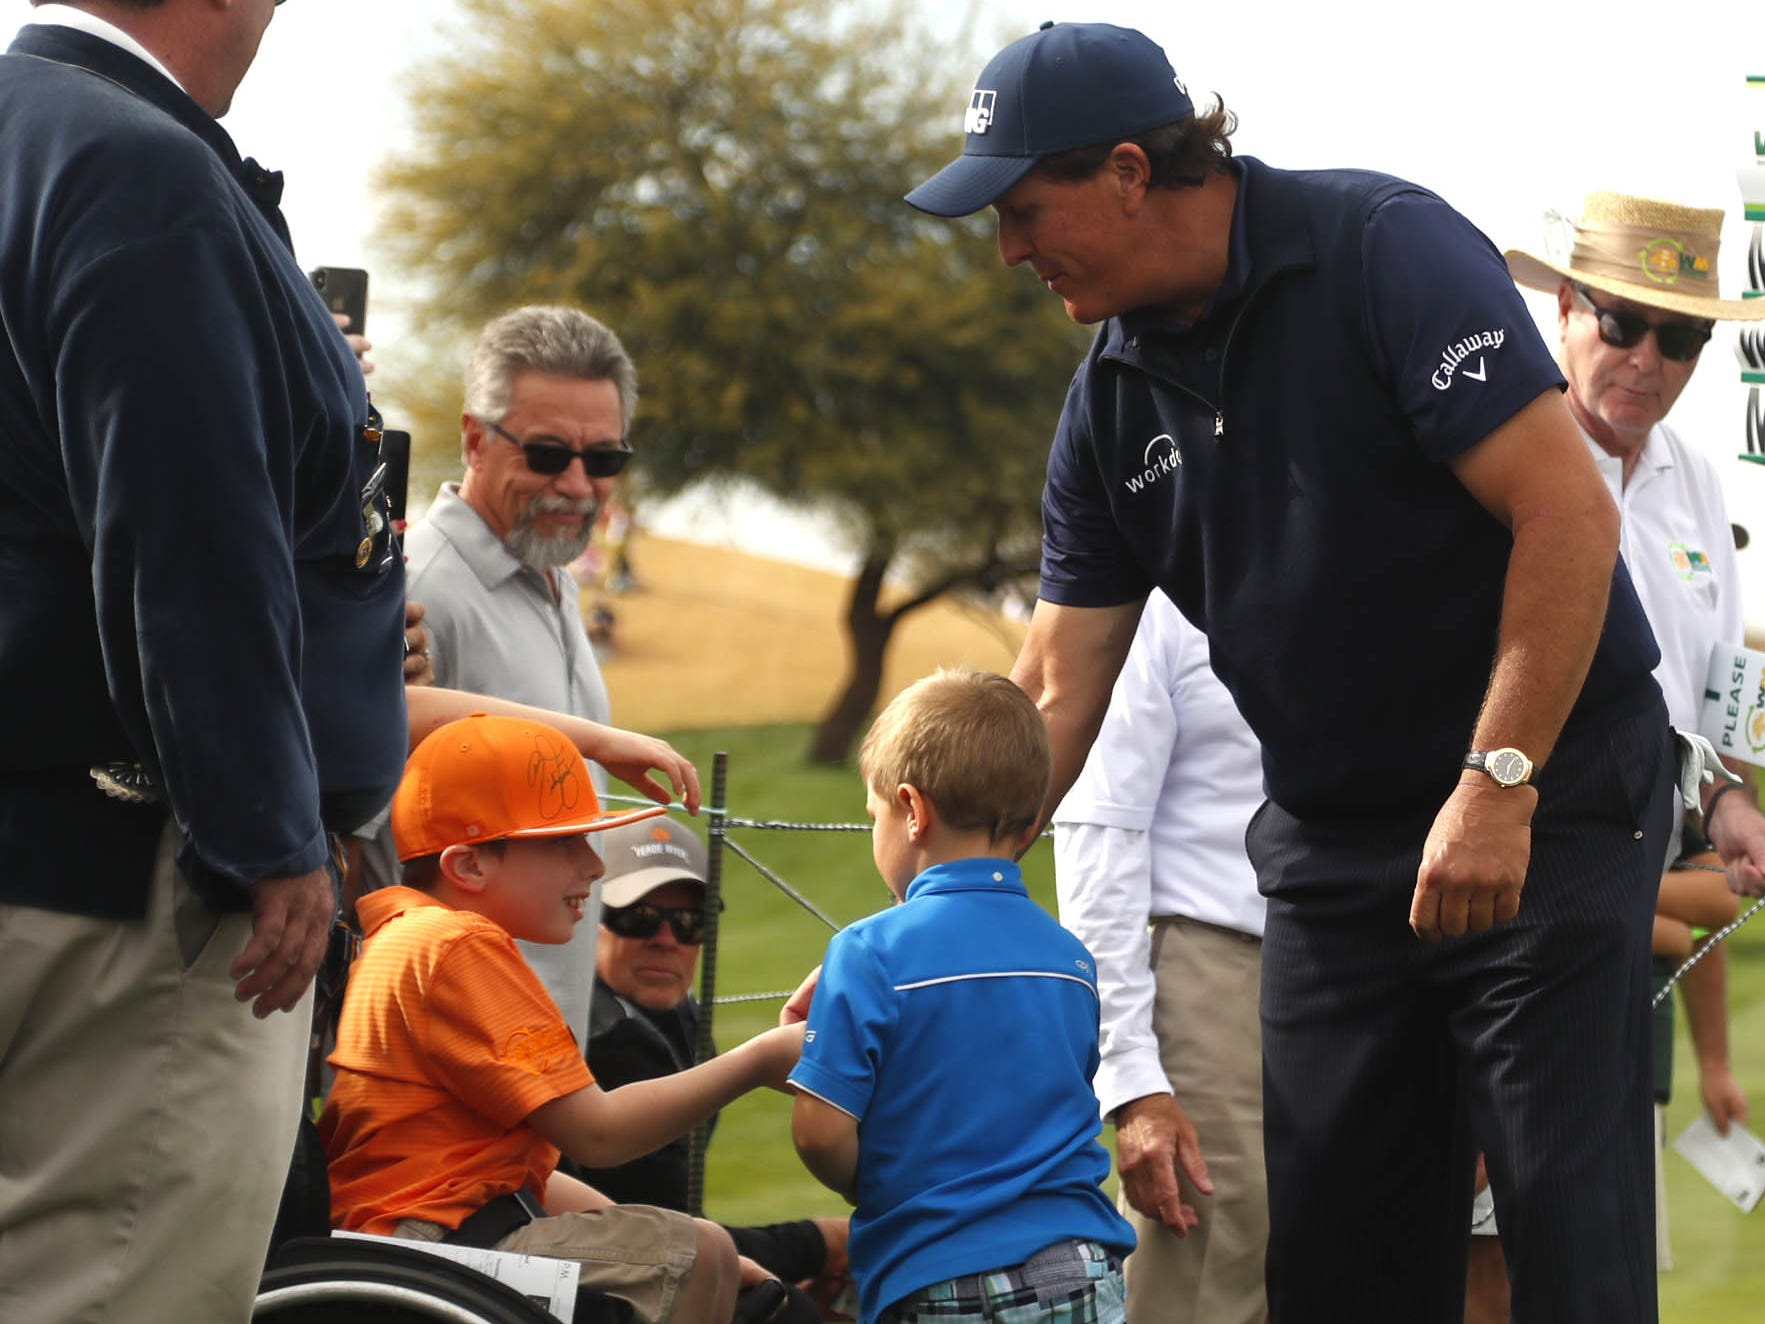 Phil Mickelson shakes a hand of a young fan after making a birdie on the 9th hole during first round of the Waste Management Phoenix Open at TPC Scottsdale in Scottsdale, Ariz. on January 31, 2019.